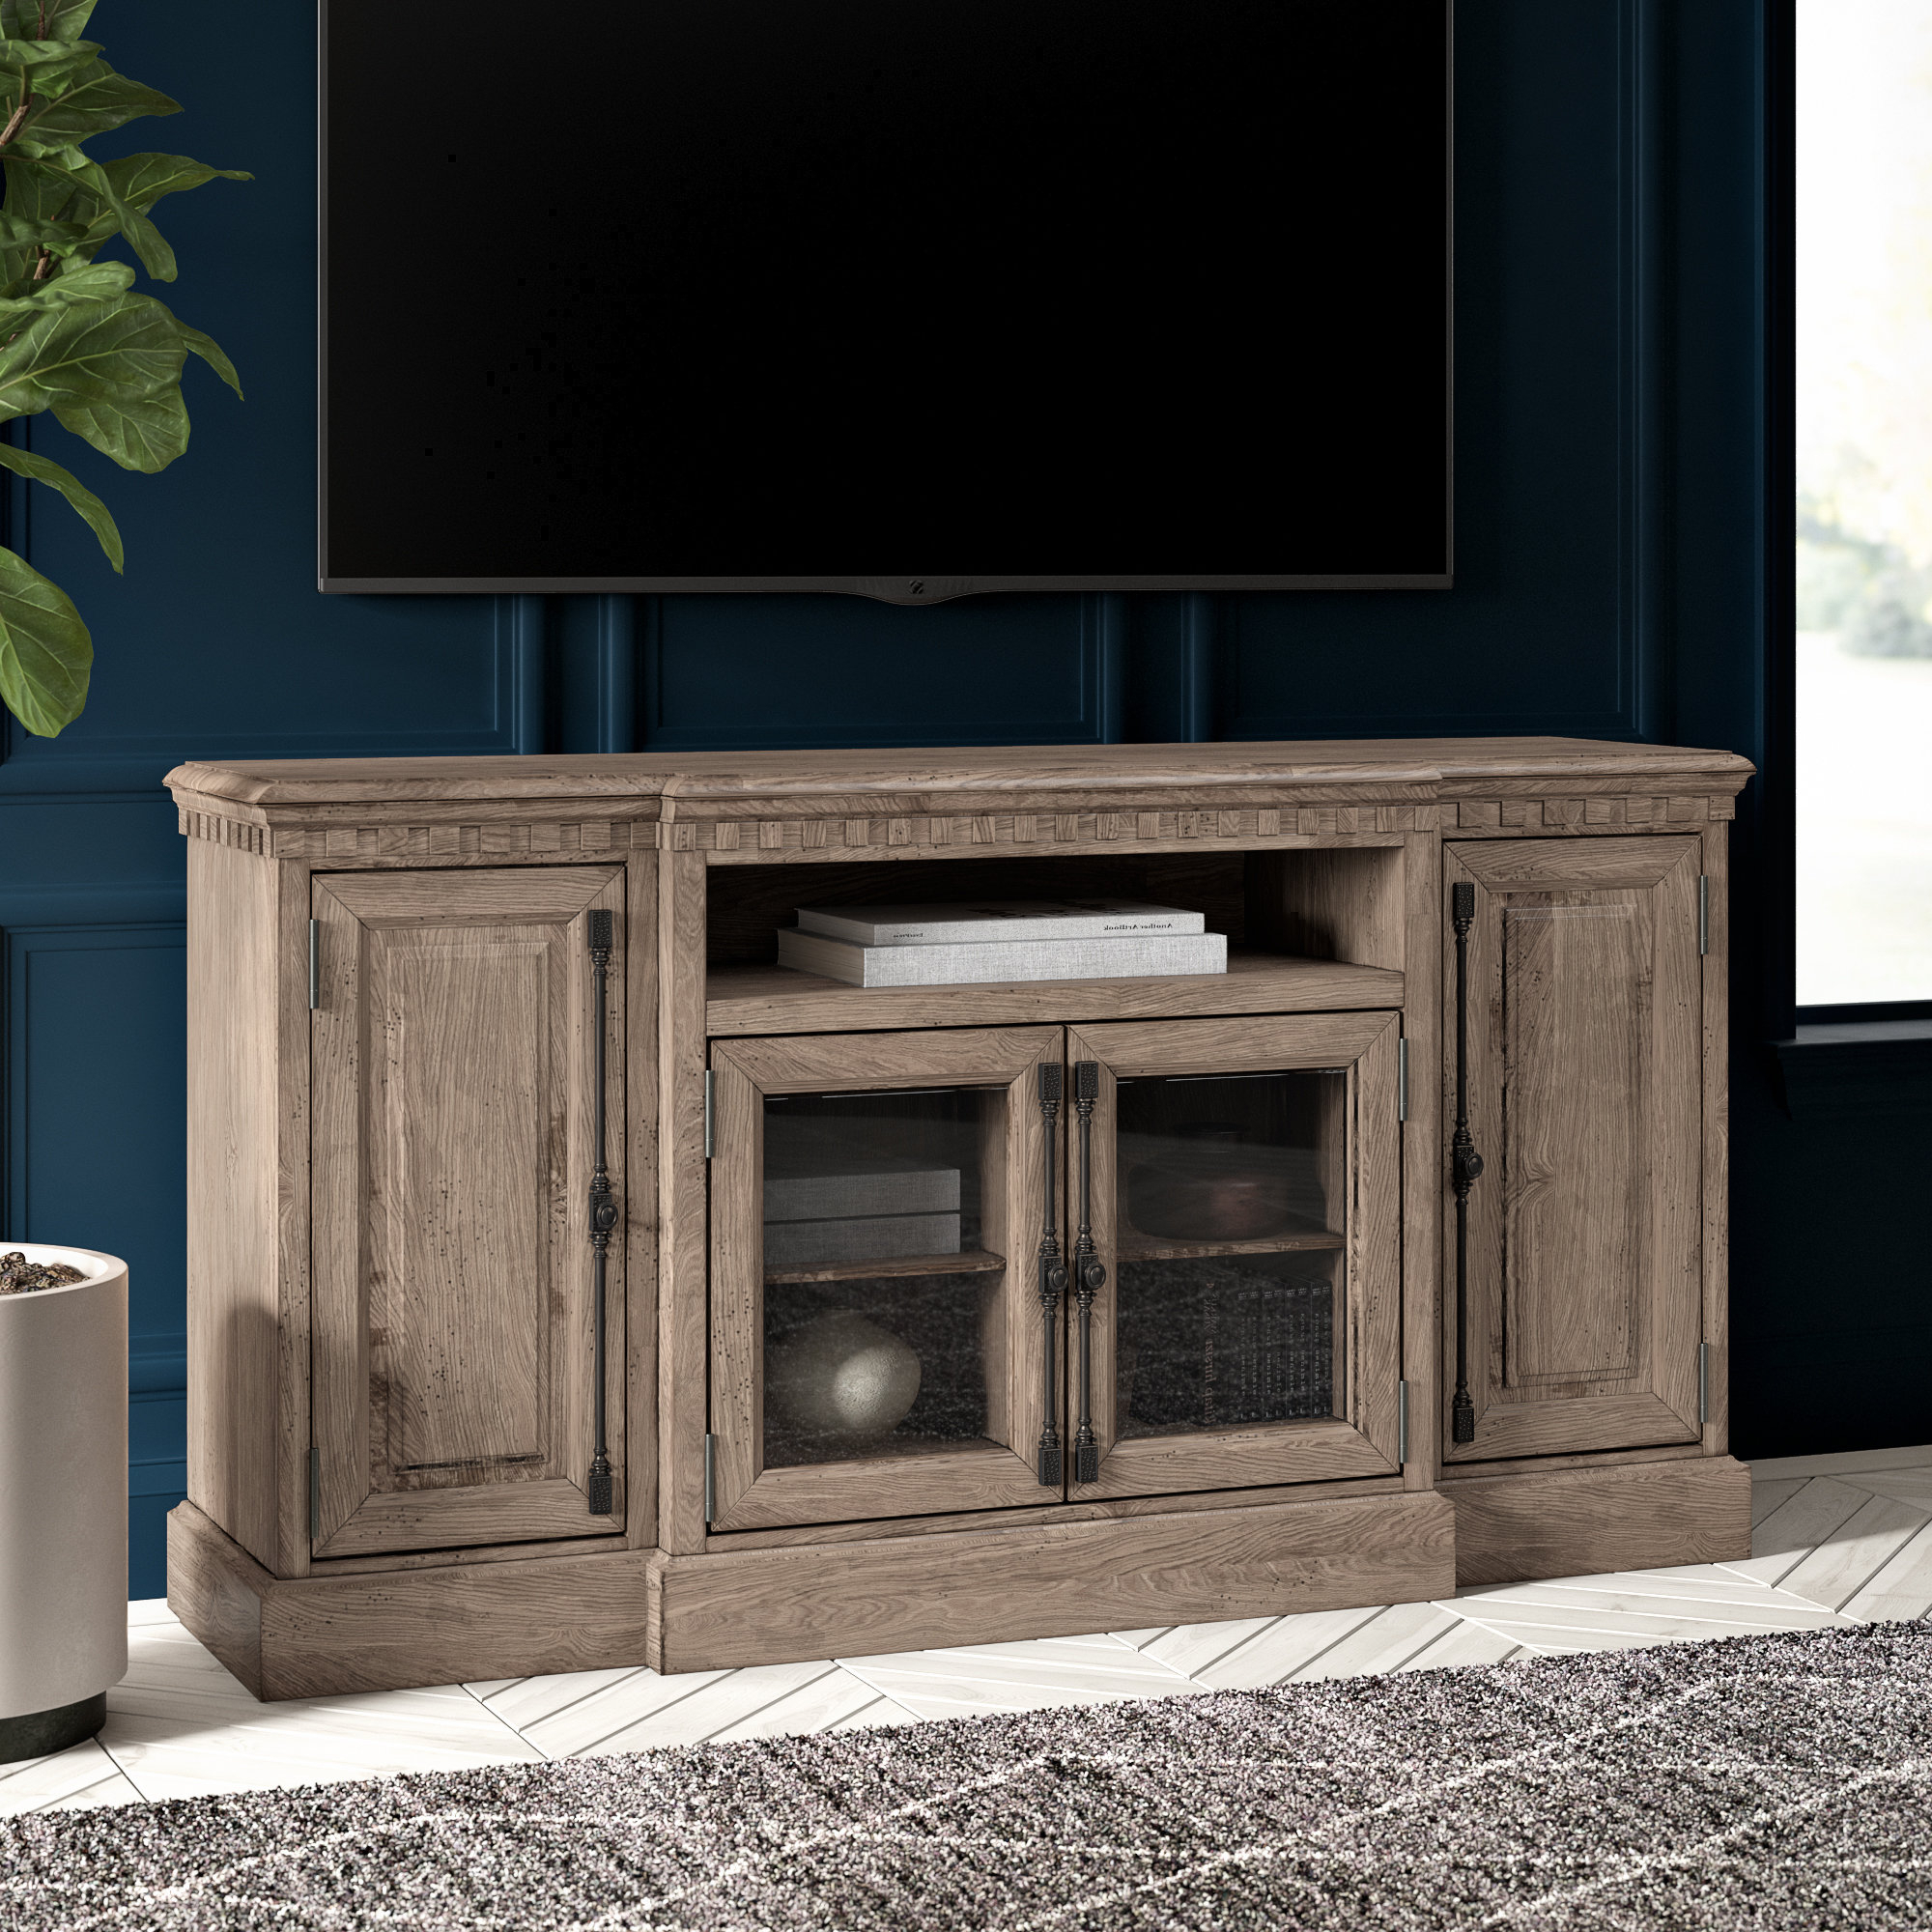 Tall Tv Stands You'll Love | Wayfair Intended For Canyon 54 Inch Tv Stands (View 19 of 20)